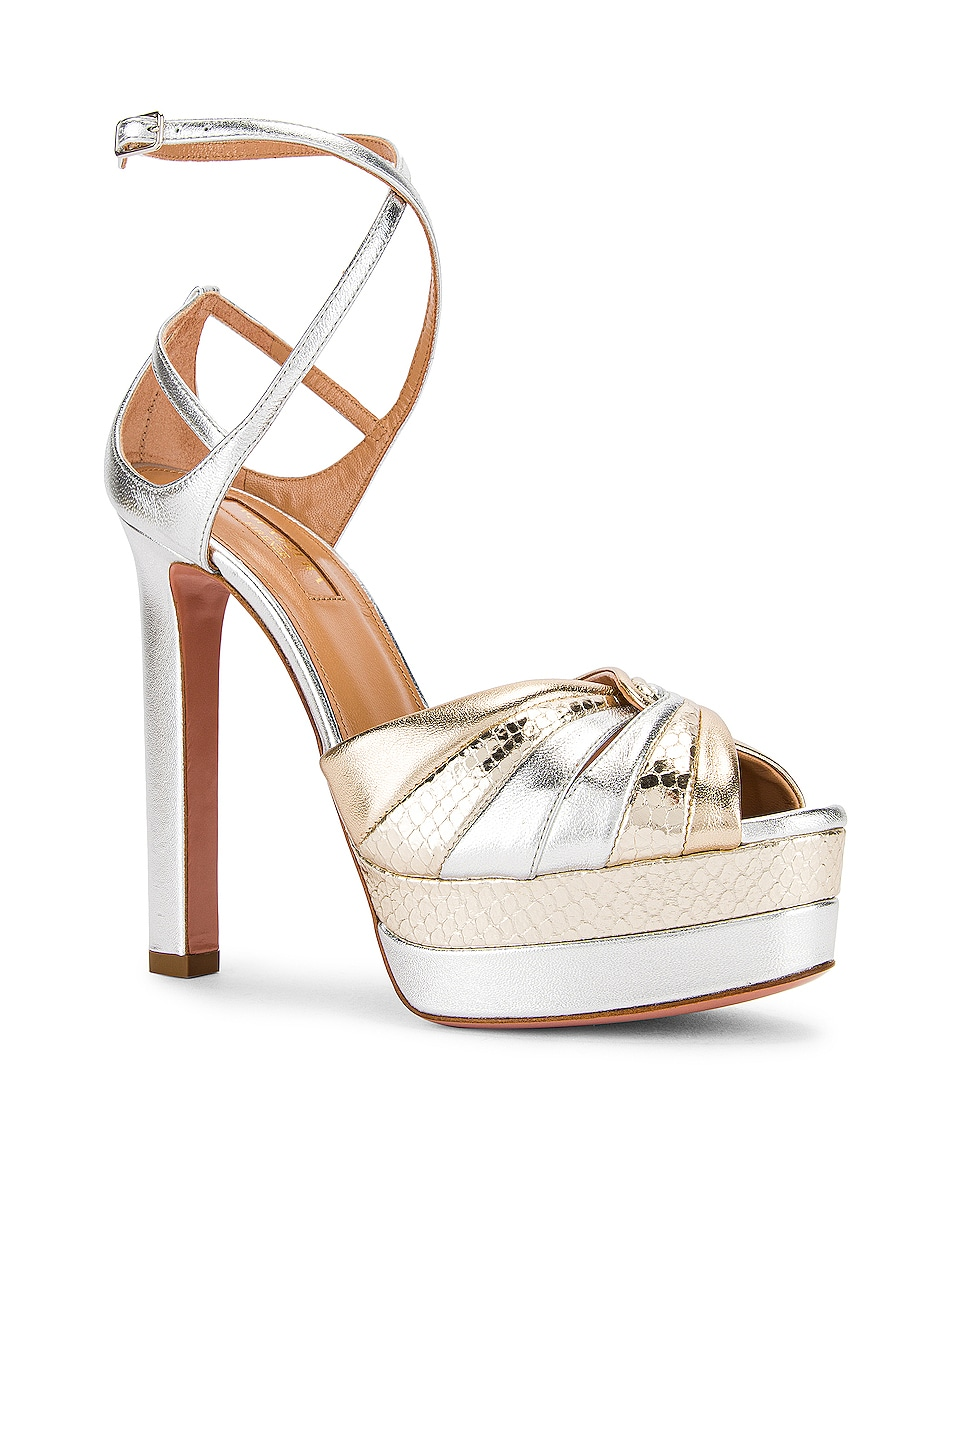 Image 2 of Aquazzura La Di Da Plateau 130 Sandal in Soft Gold & Silver